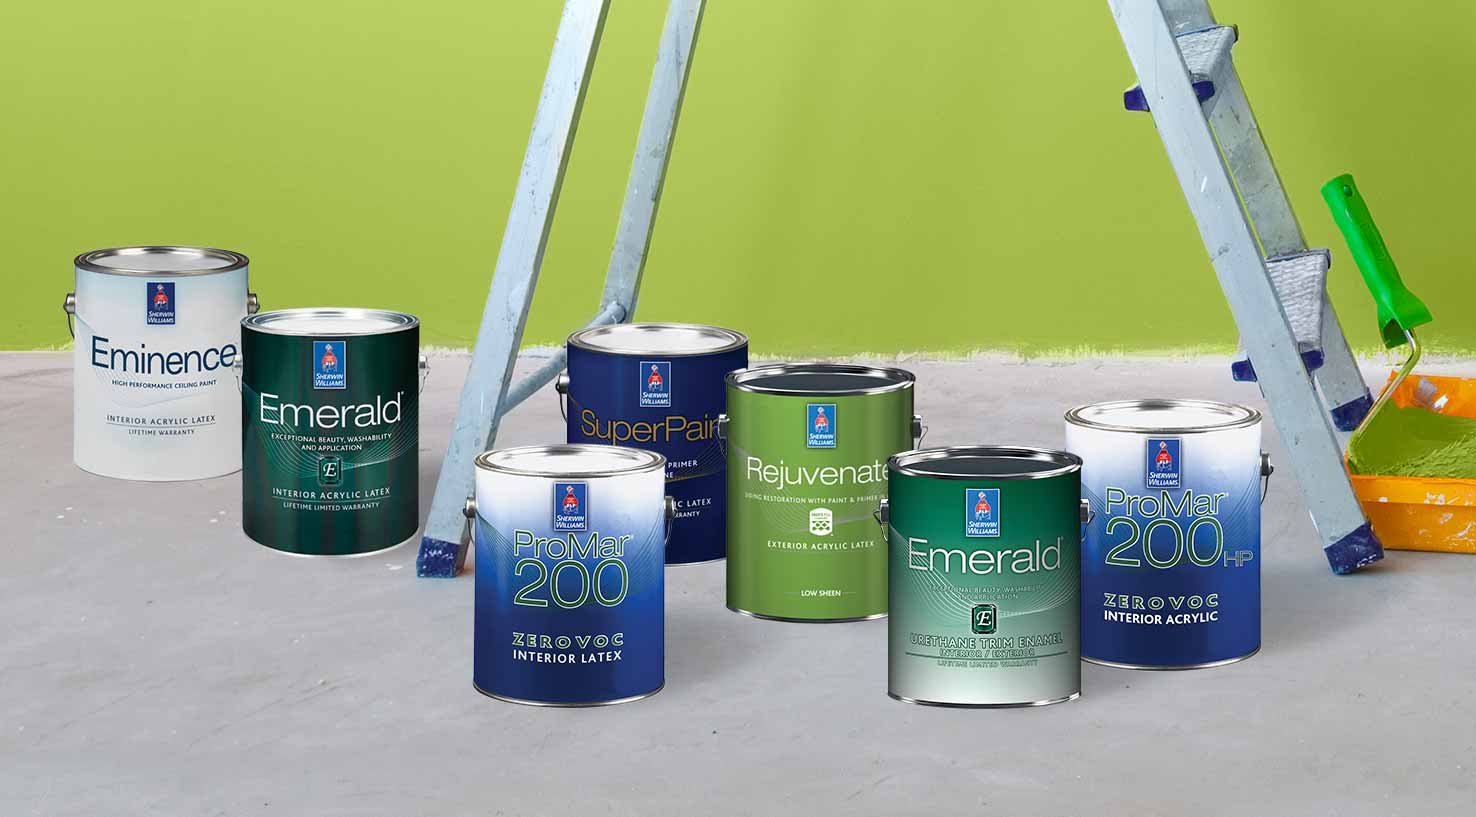 Lineup Of Sherwin Williams High Performance Coatings, Including Zero VOC,  Emerald, Pro